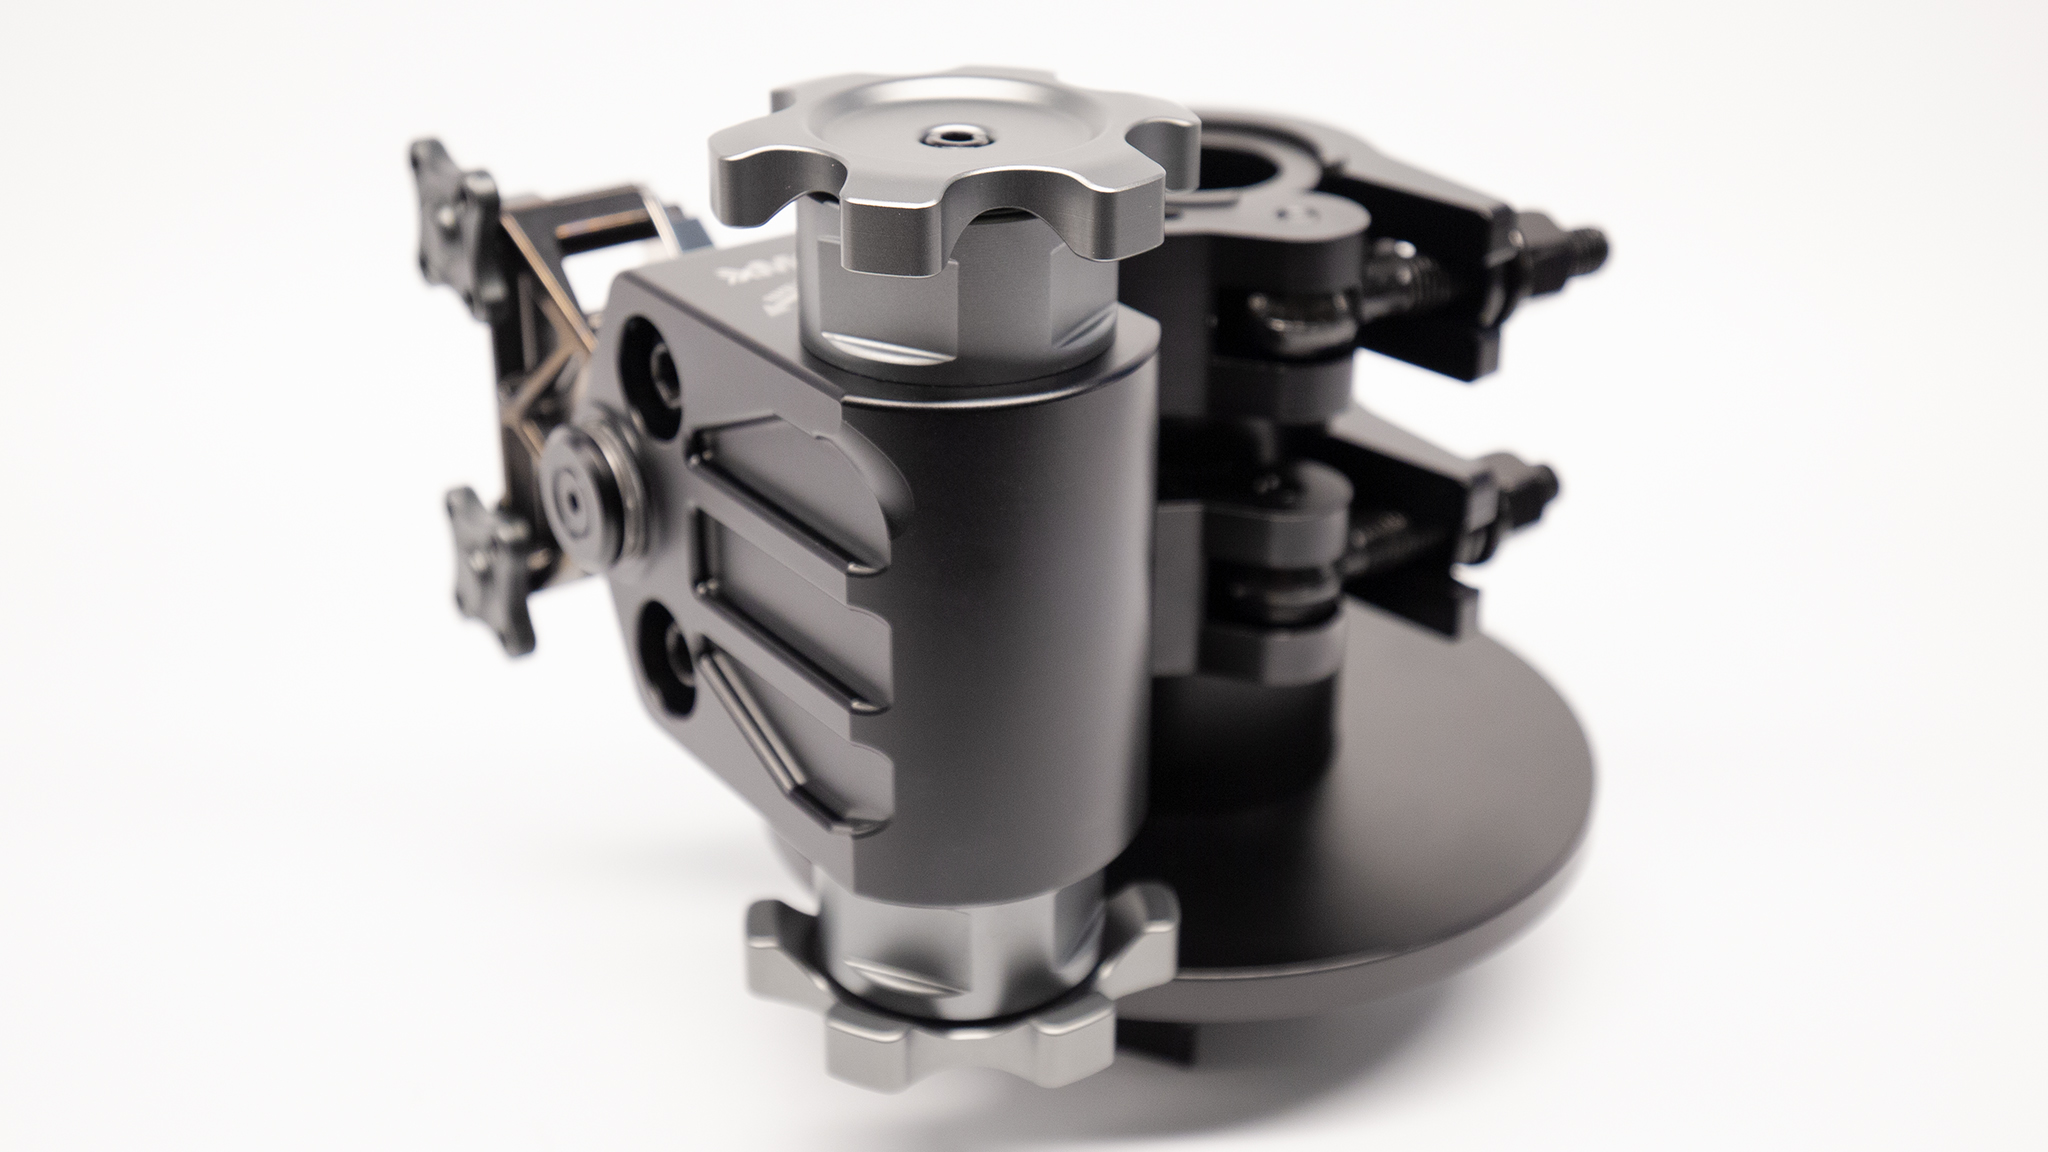 xMOUNT and mitchell adapter